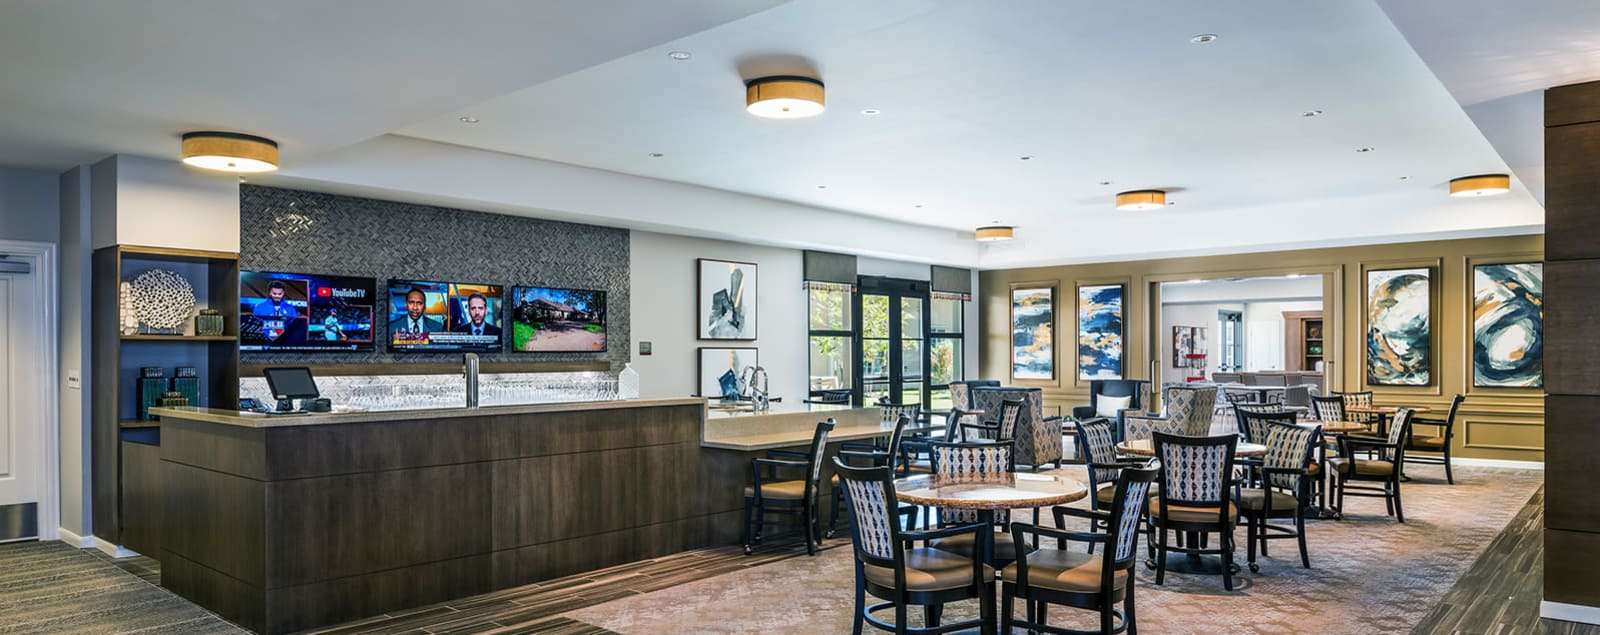 Schedule a senior living tour in Southlake